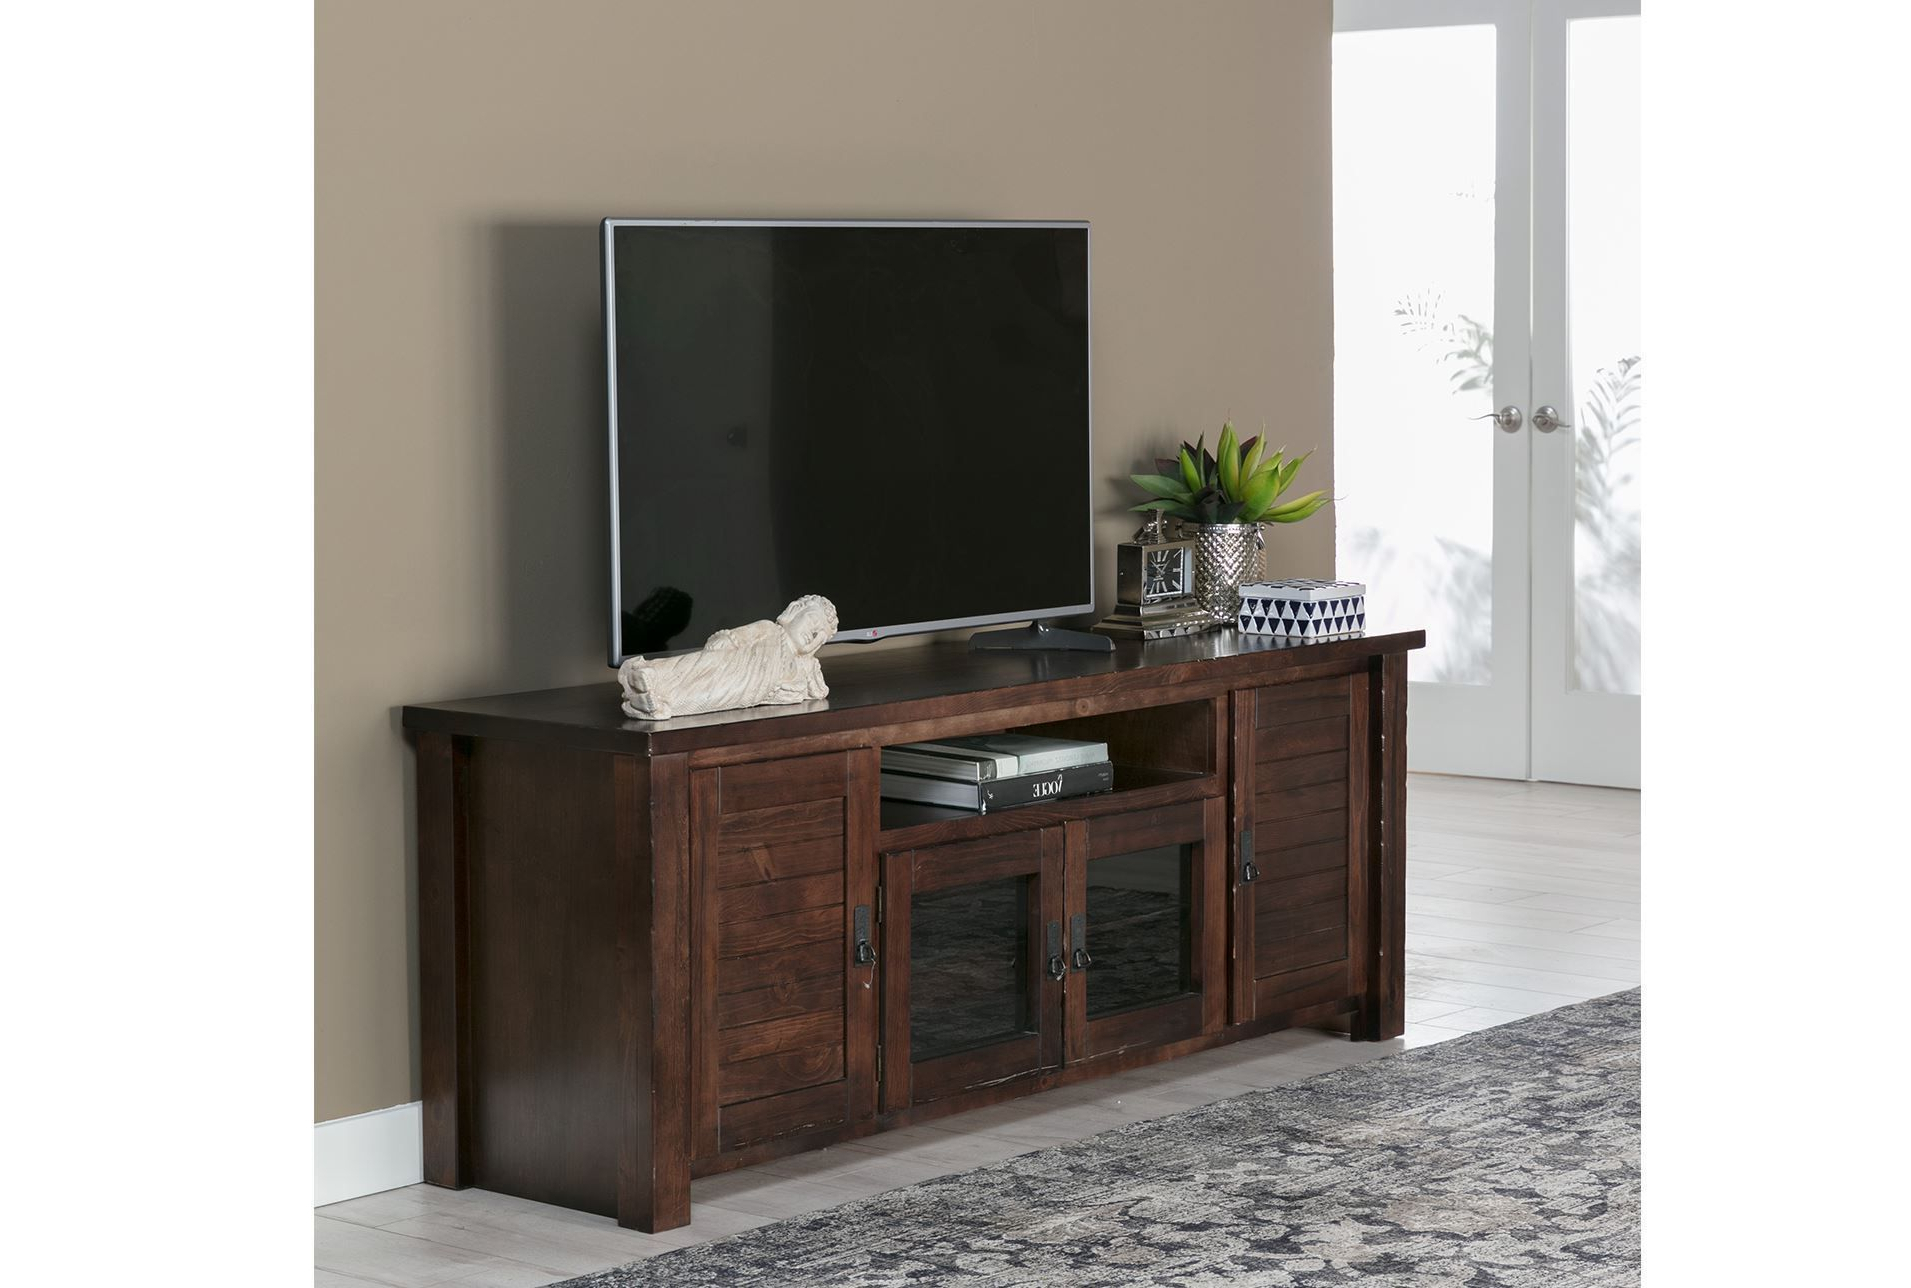 Canyon 74 Inch Tv Stand | For The Home | Pinterest | Home Living Intended For Canyon 74 Inch Tv Stands (View 8 of 20)